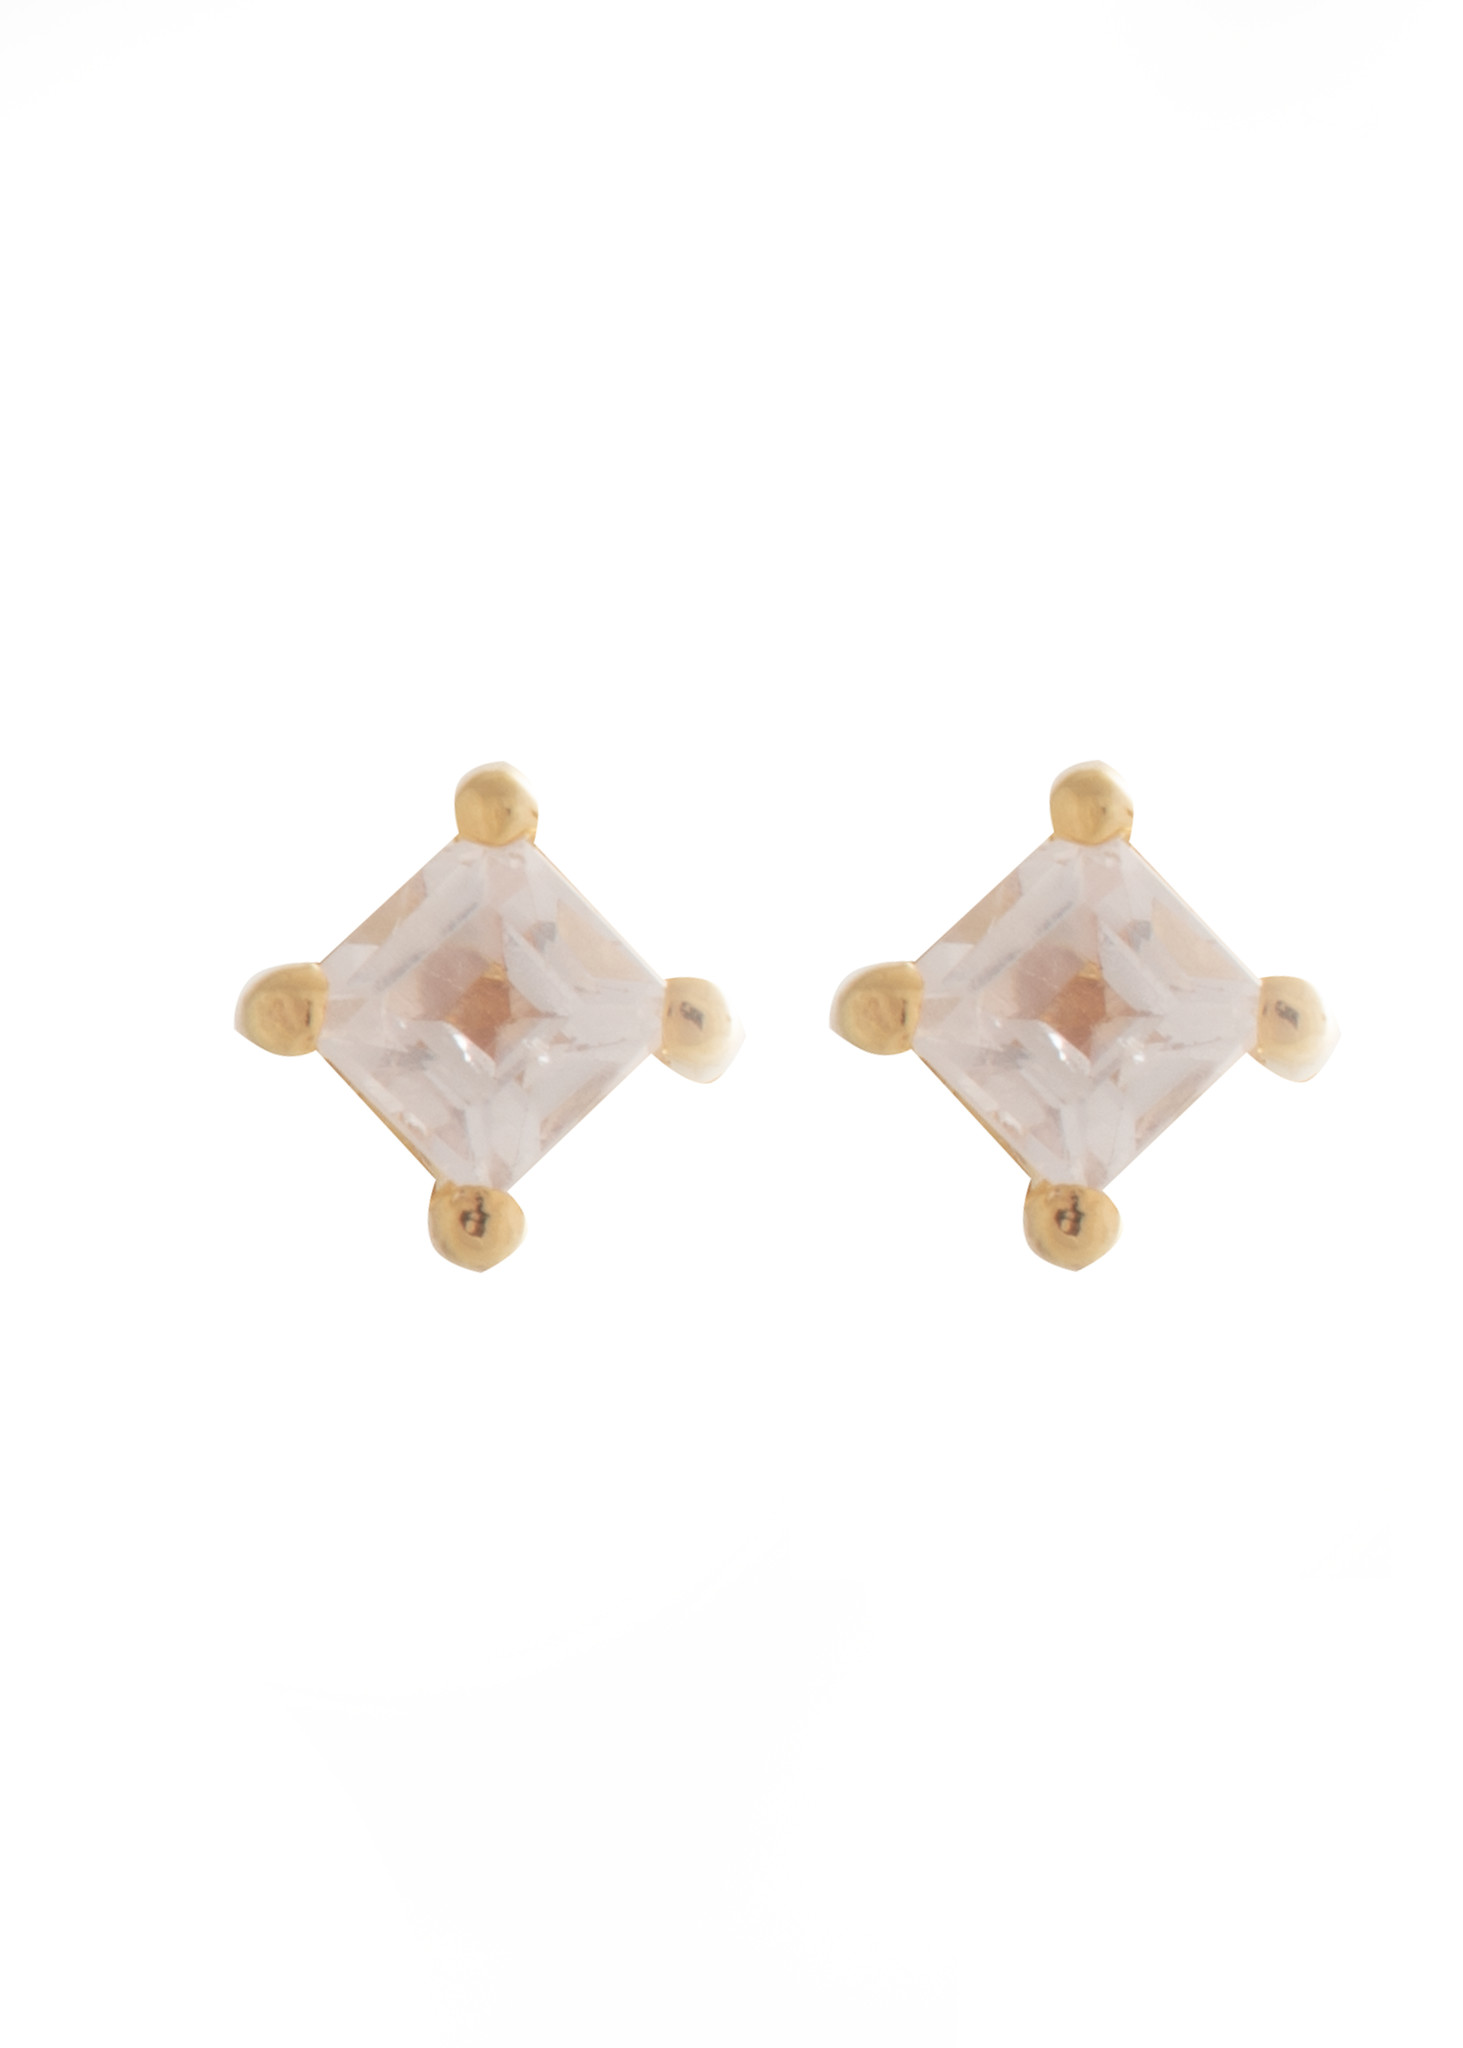 Sarah Mulder Jewelry Cassie studs - More colors!